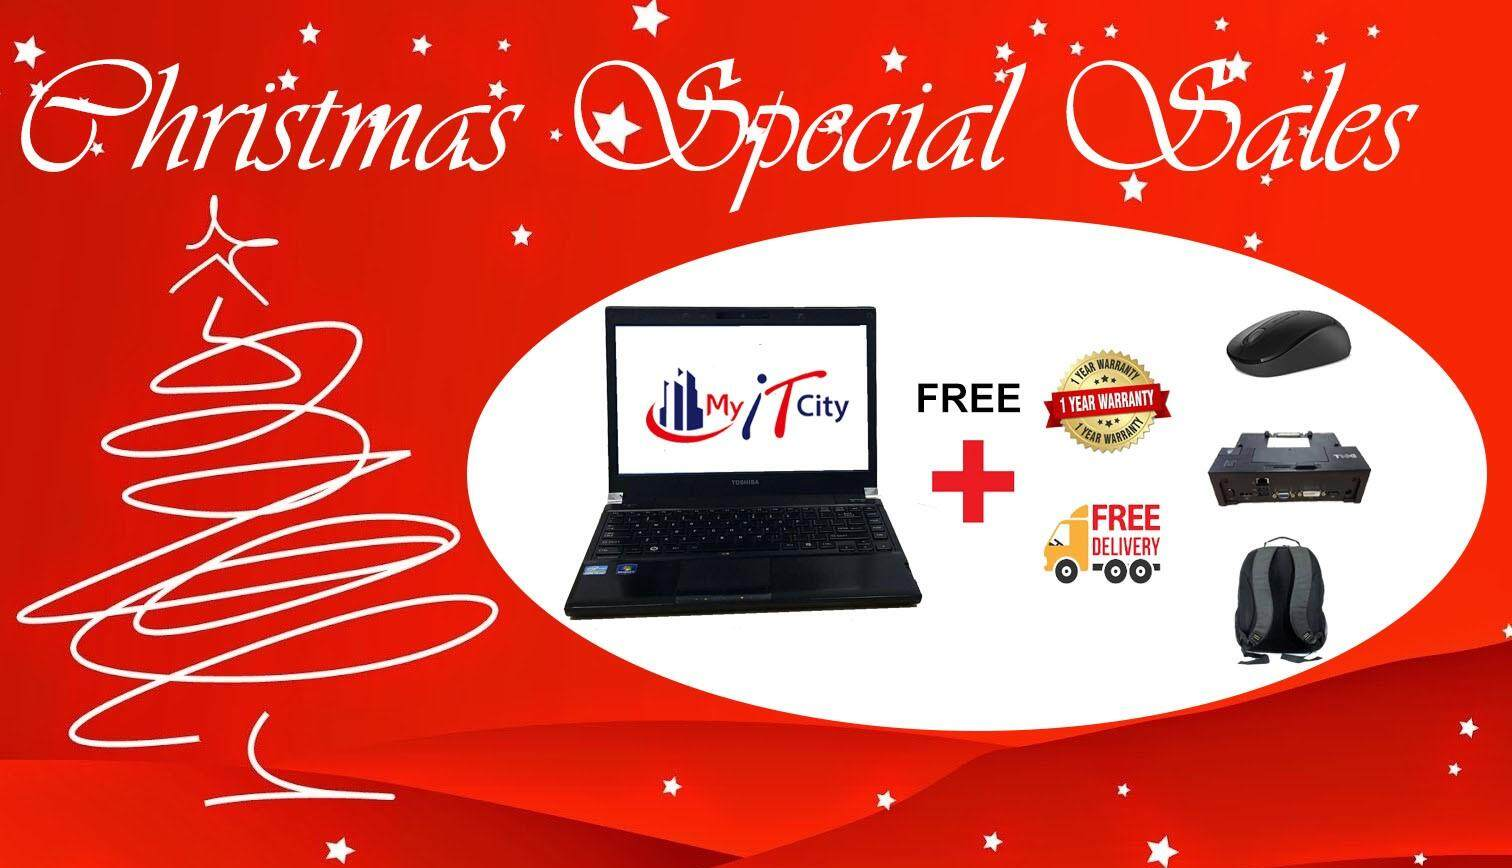 Christmas Sales - Toshiba Protege R830 - i5 / 4GB RAM / 120GB SSD / Windows 10 / 1-Year Warranty (Refurbished) Malaysia